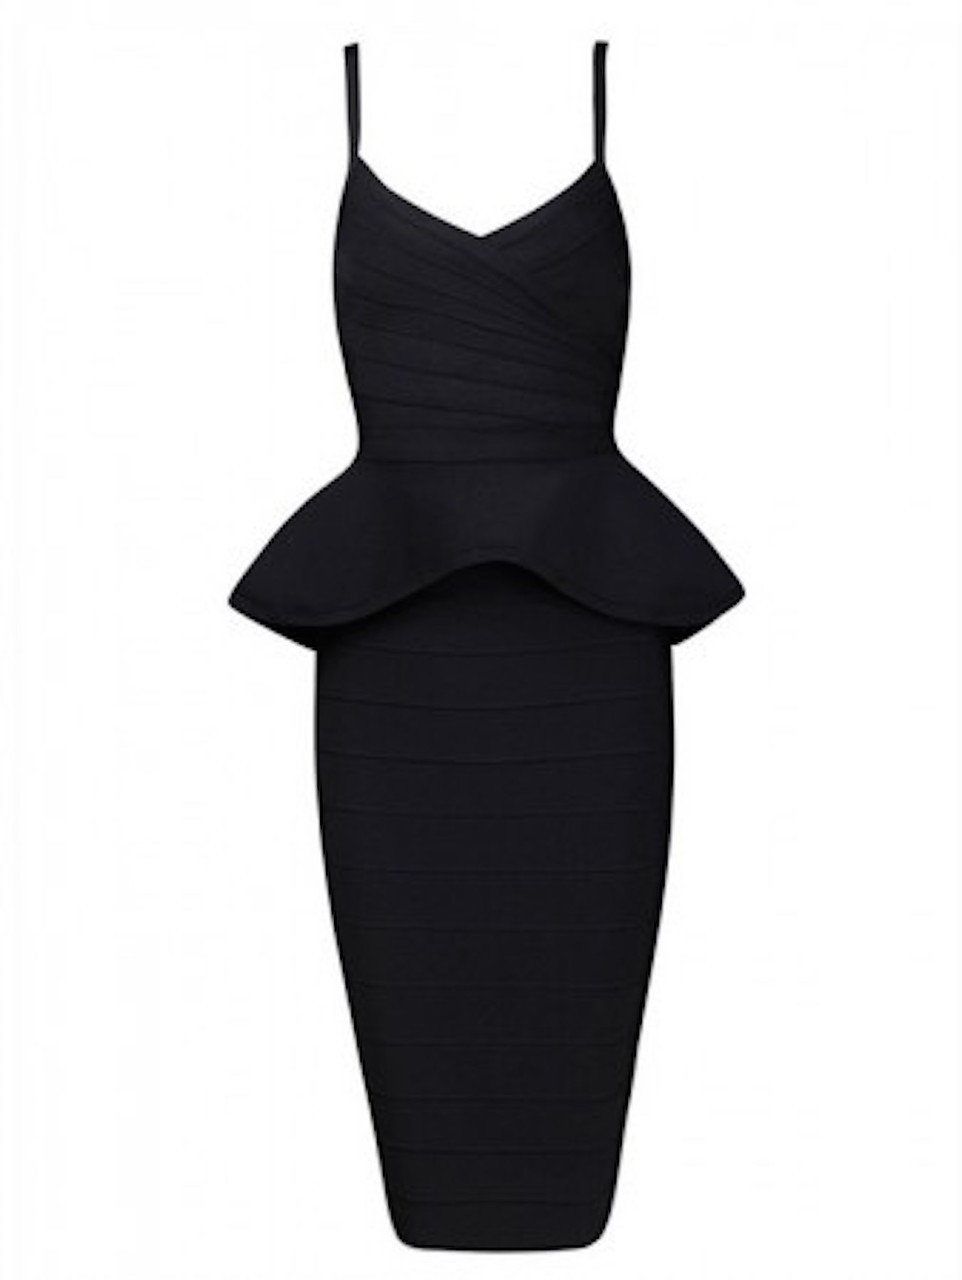 Black  Two Piece Peplum Top Midi Bandage Dress Skirt